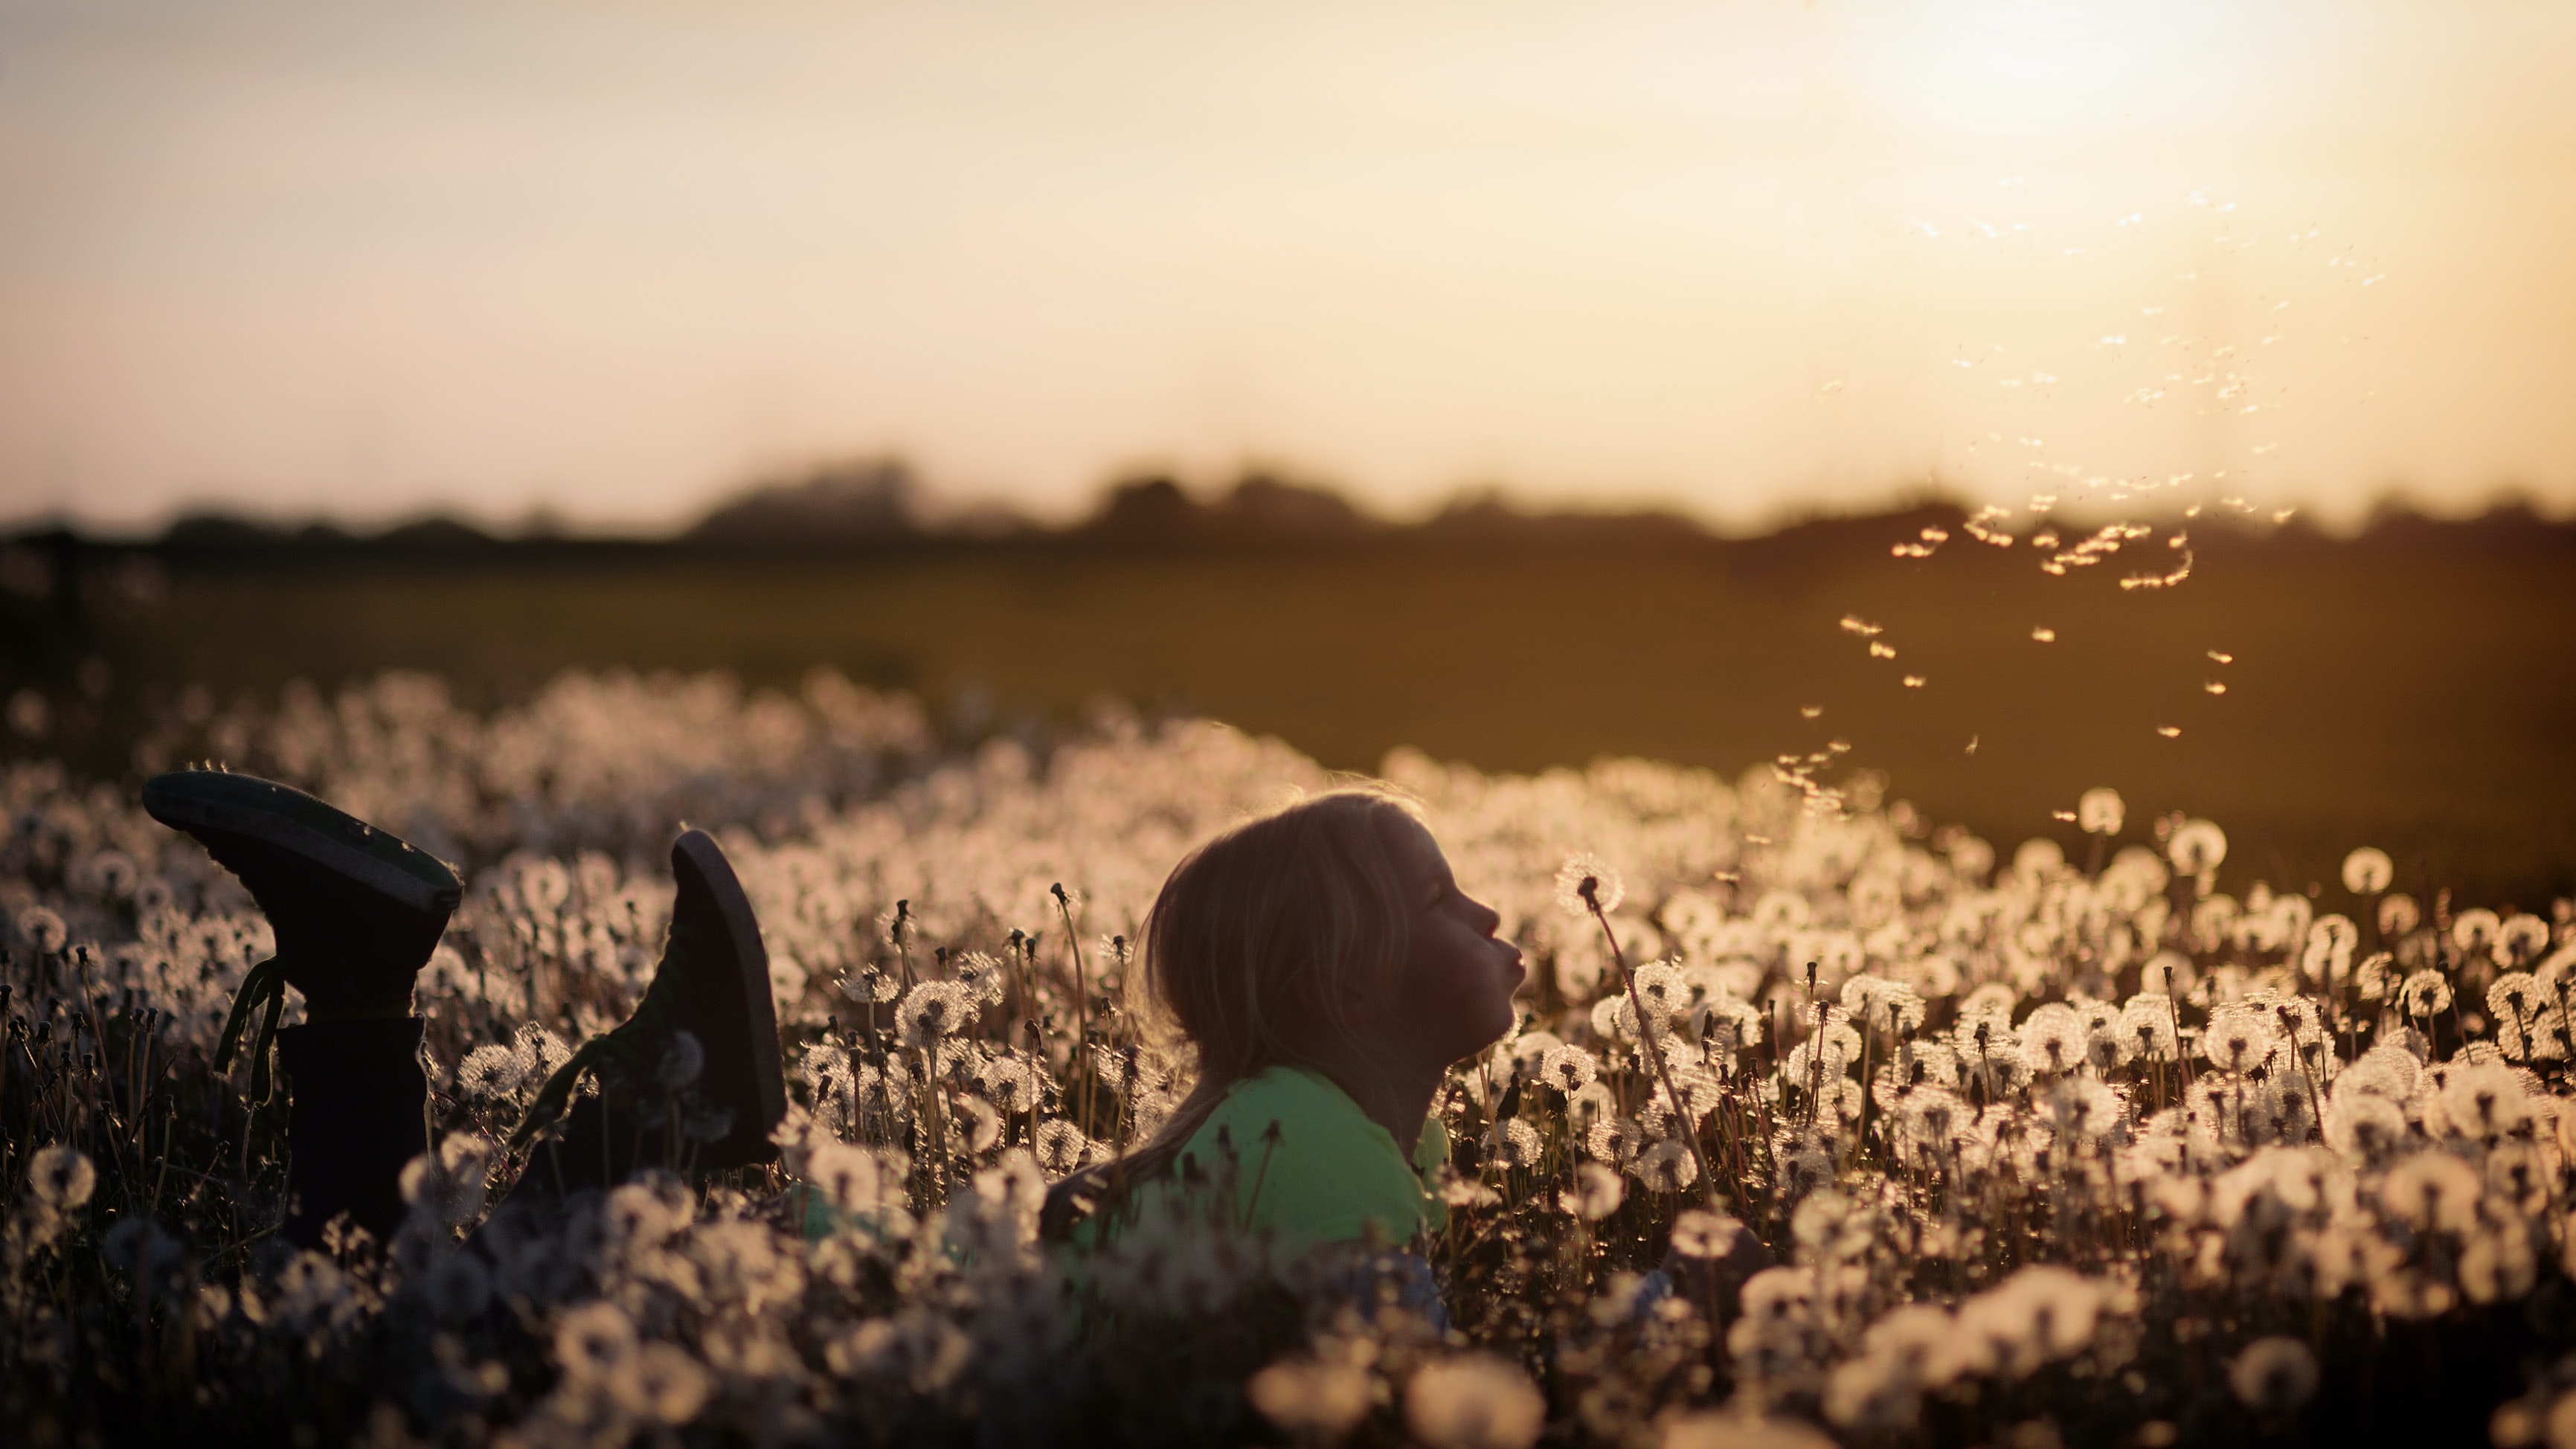 A little girl laying in a field of dandelions making a wish